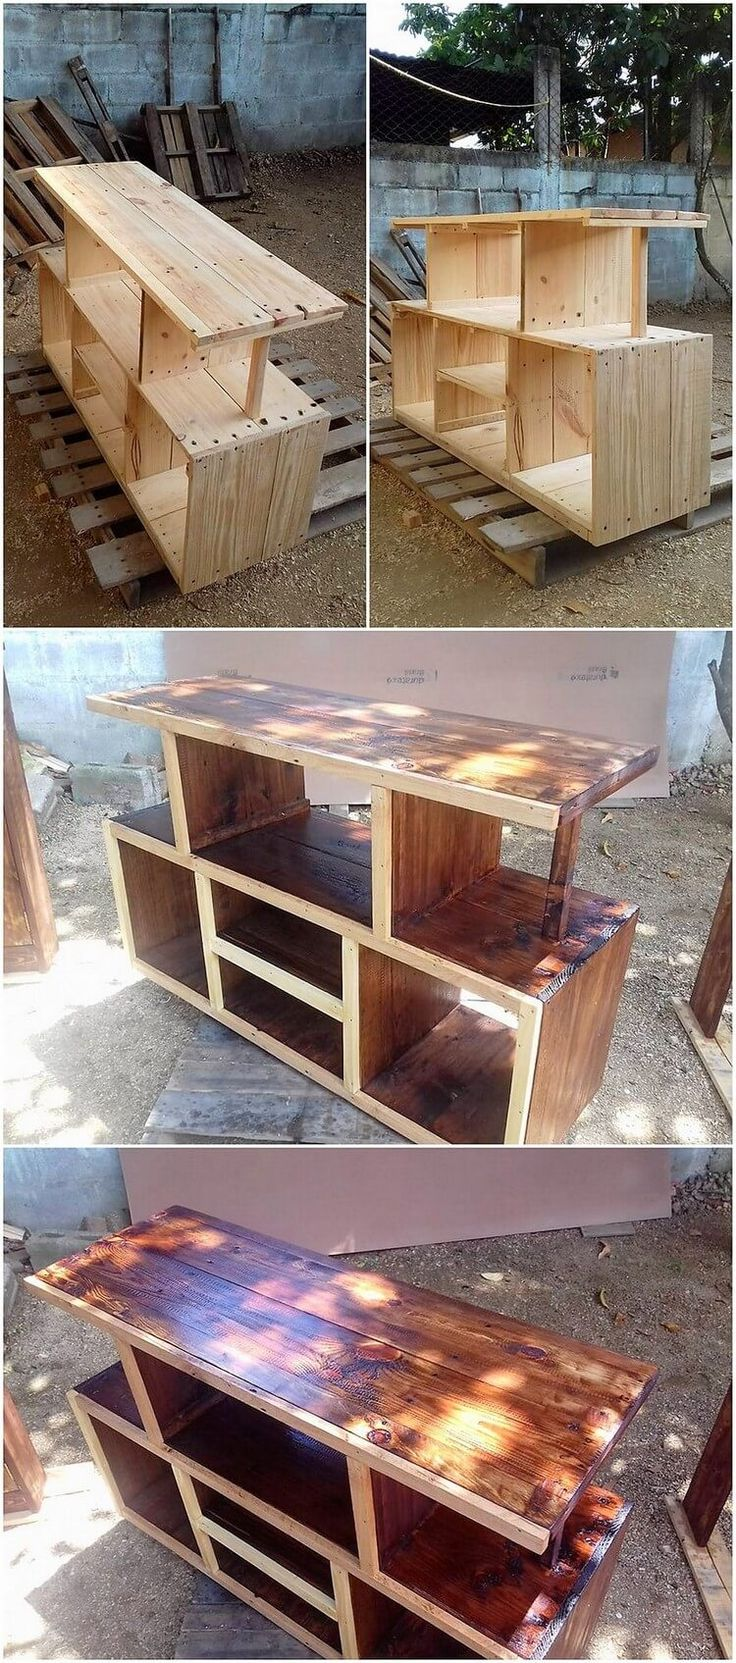 A customized designing of the pallet tv stand has been highlighted here for you. This tv stand has been dramatic added with the wood pallet effect where you will even encounter with the effect of the media table and cabinet divisions too. Grab this idea now!